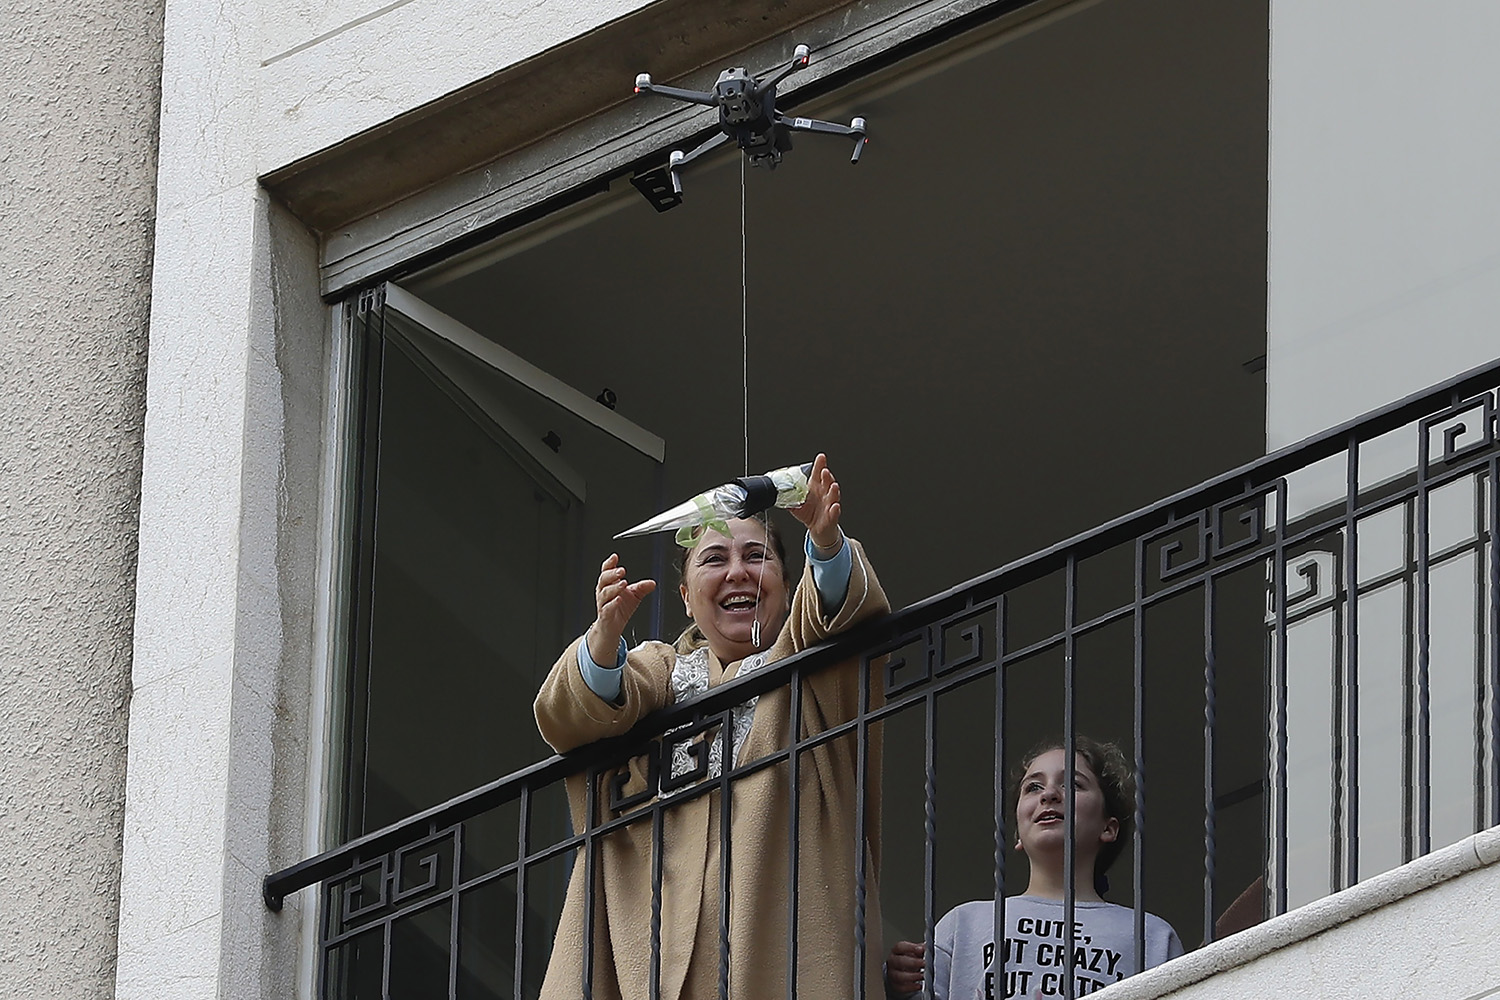 A woman standing on her balcony reaches out to catch a rose delivered to her via a drone on Mother's Day in the Lebanese coastal city of Jounieh, north of Beirut, on March 21. Three students came up with the service to celebrate the occasion without flouting social distancing restrictions. JOSEPH EID/AFP via Getty Images